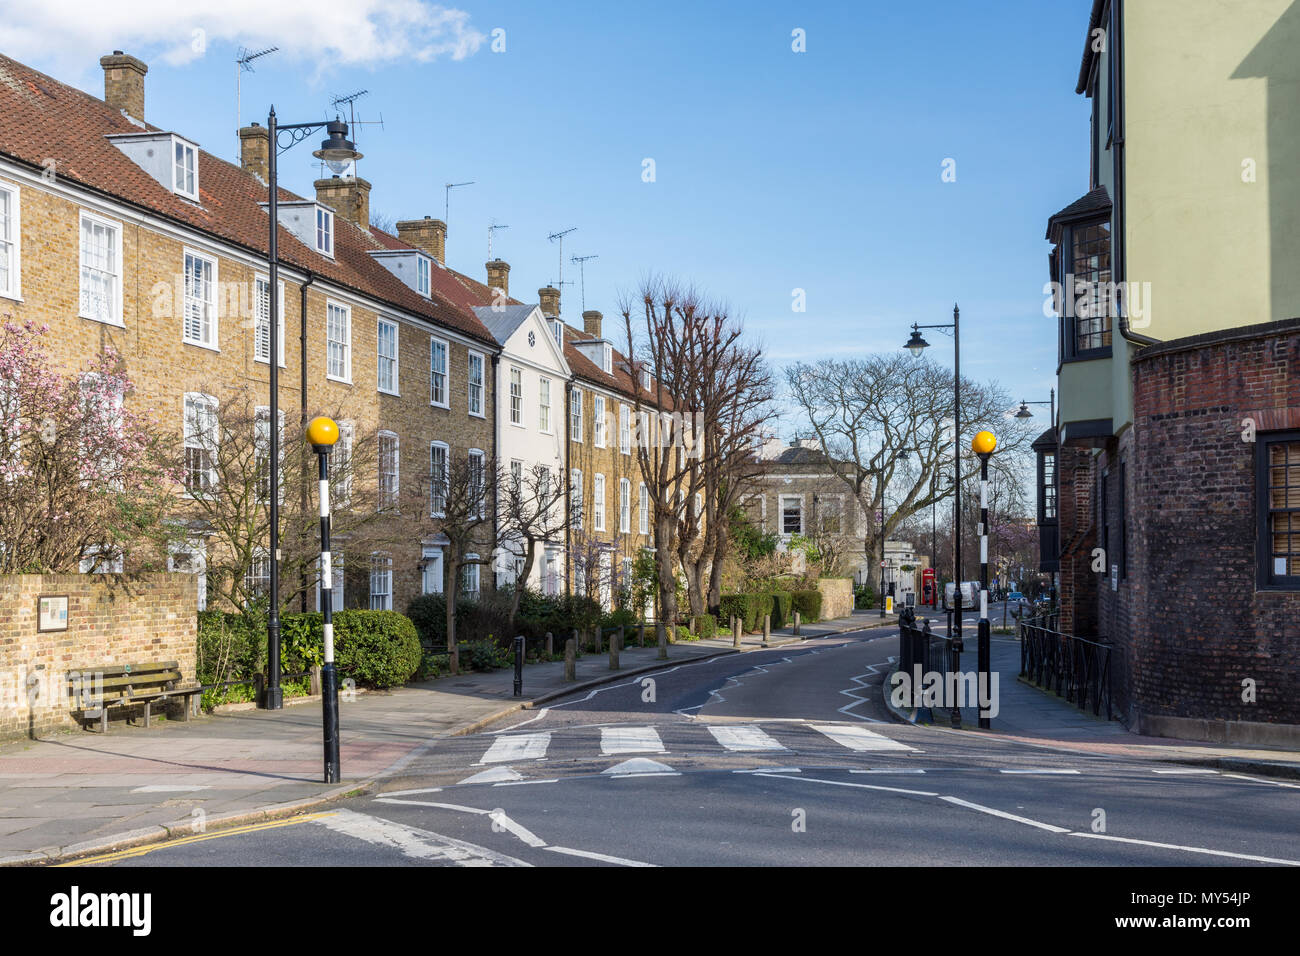 London, England, UK - February 12, 2018: Terraces of traditional town houses line leafy residential streets in the Canonbury neighbourhood of Islingto - Stock Image